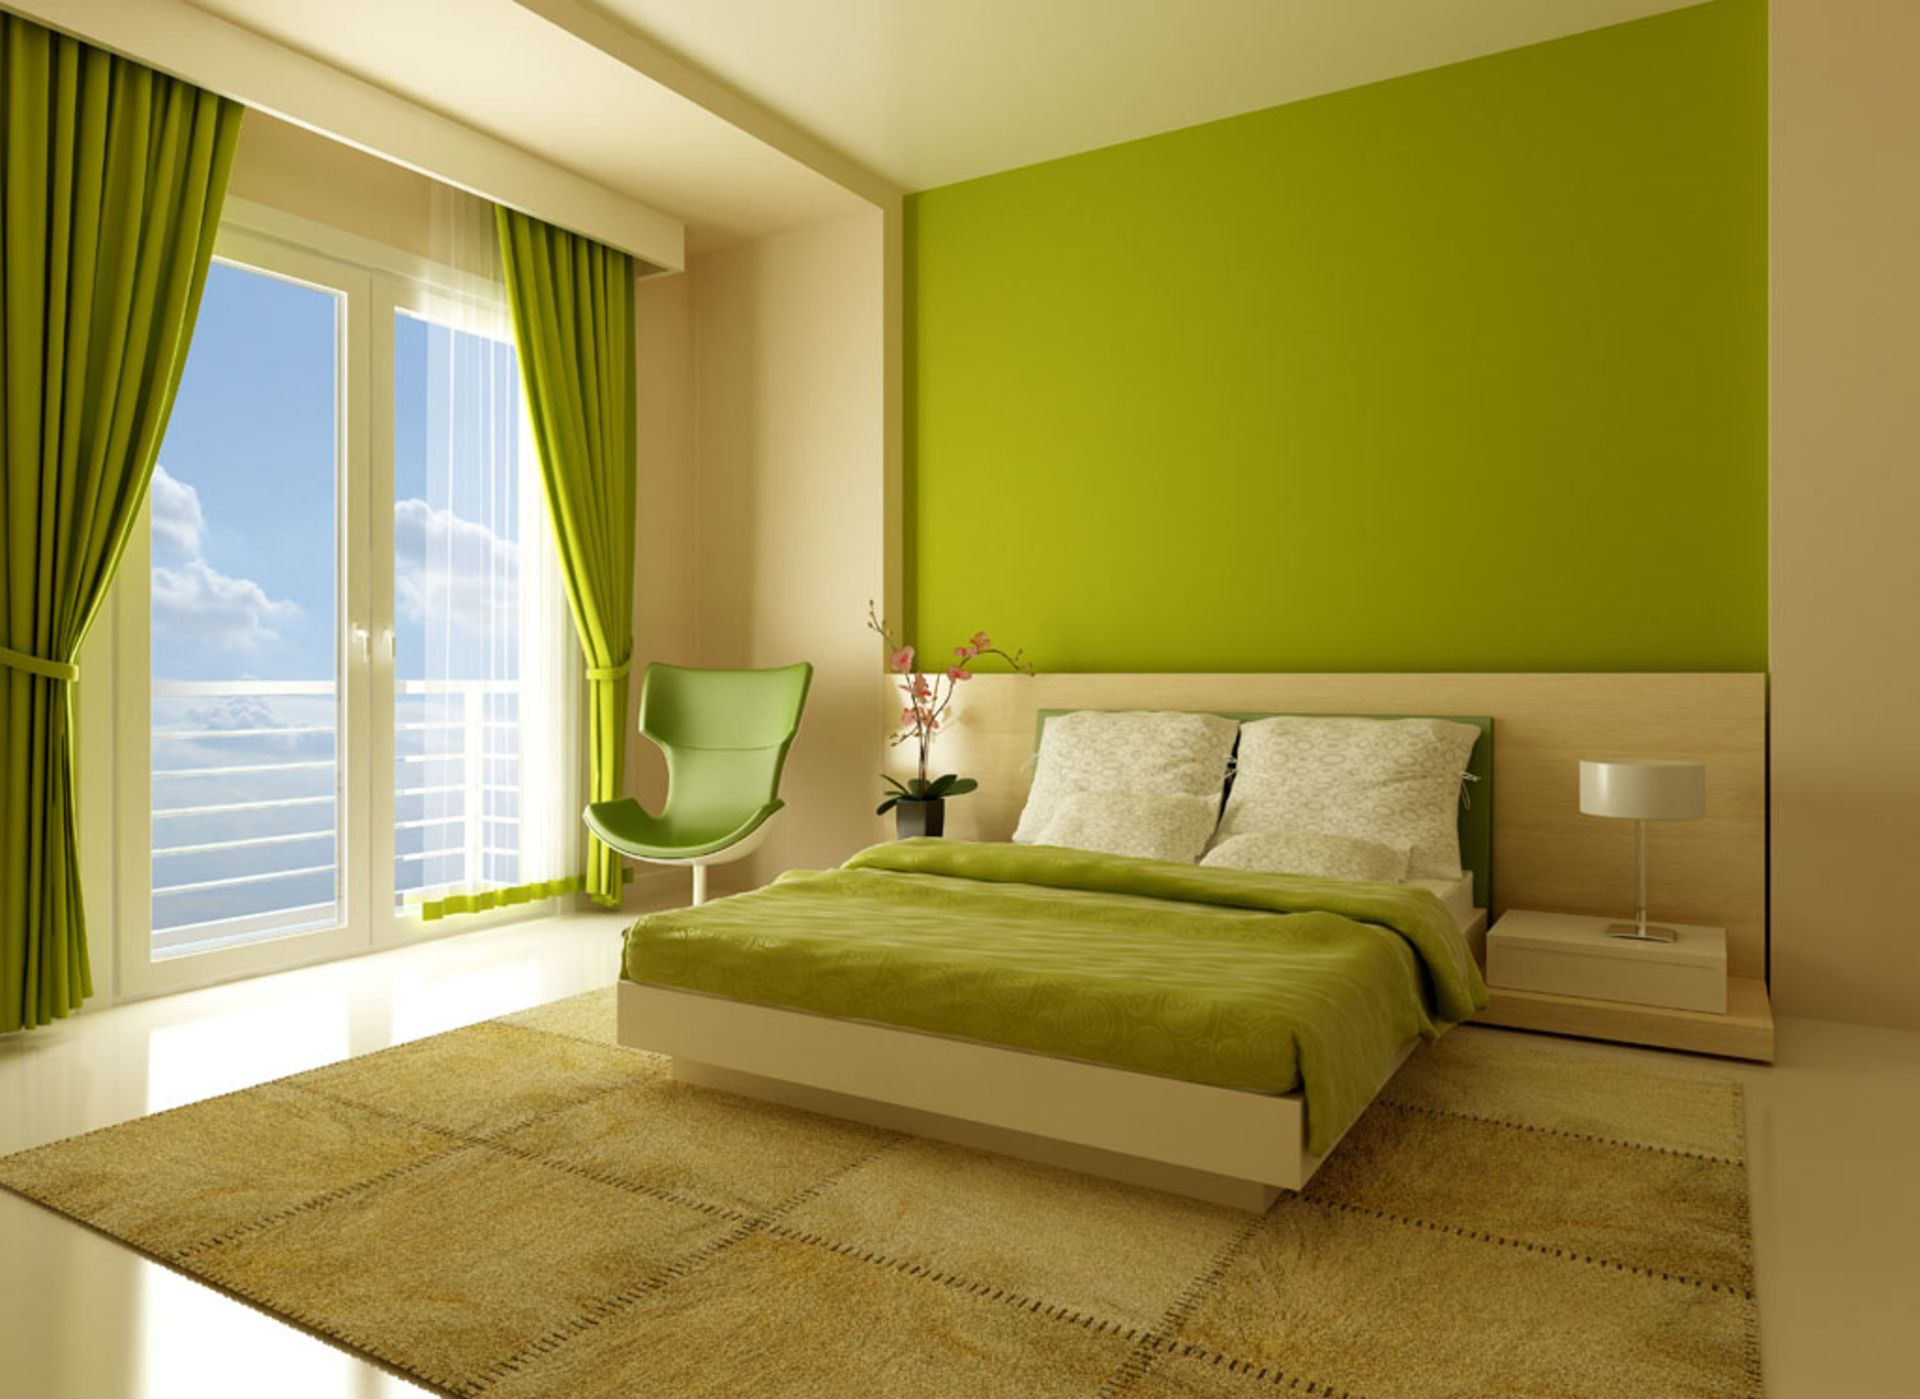 Bedroom Designs Paint Colors 40 Best Dream Bedroom Design Ideas In All Colors And Sizes